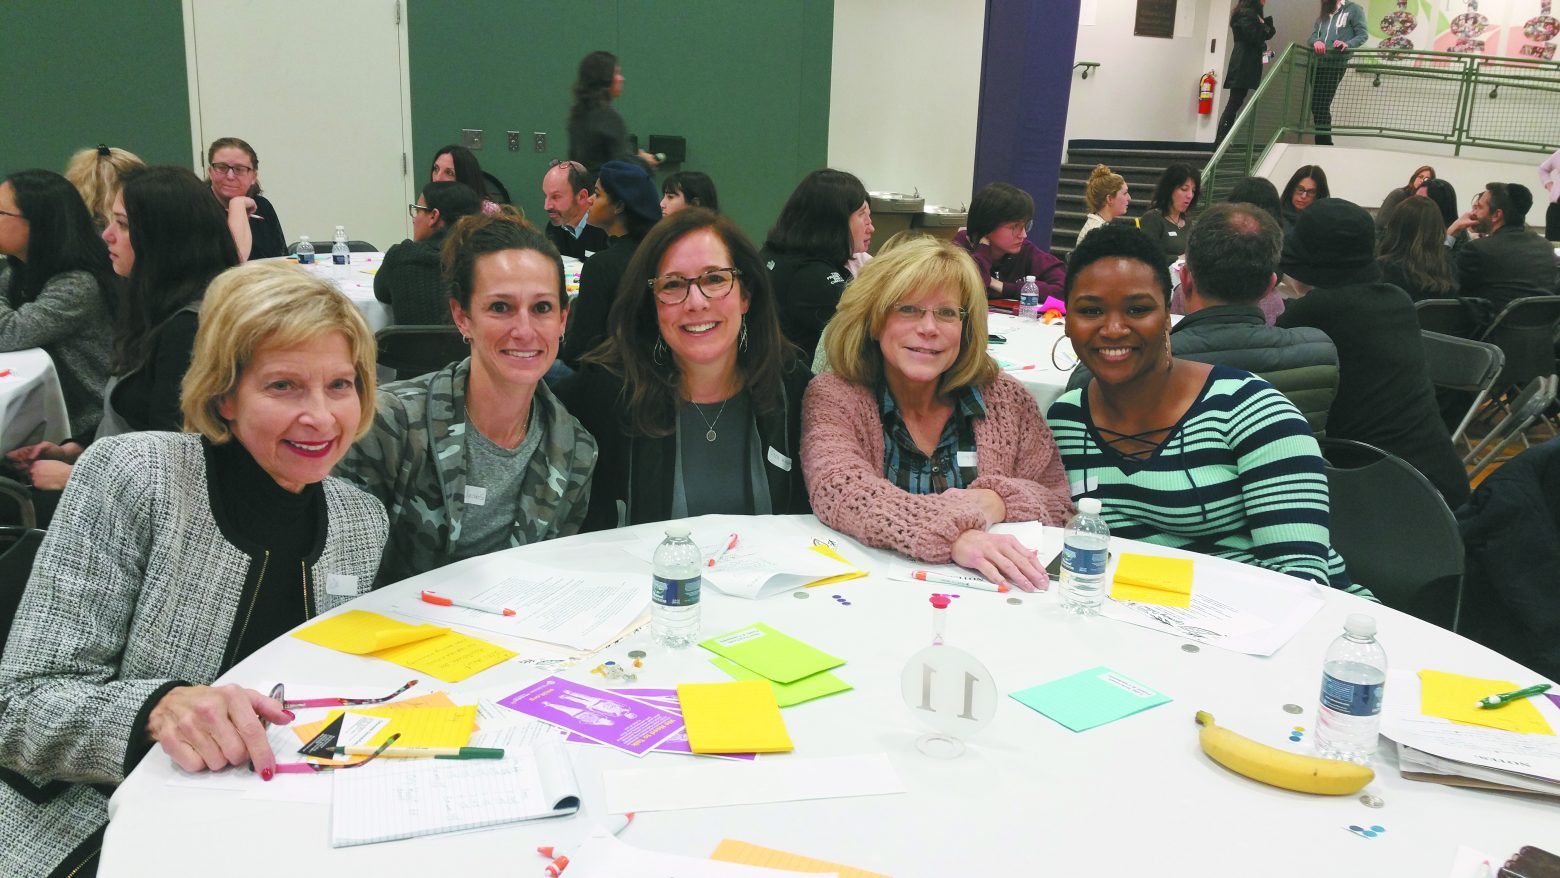 Brainstorming solutions: Deanne Ginns Gruenberg, owner of the Self Esteem Shop in Clawson and child and adolescent therapist; Jodie Jacobs, table leader; Sara Kraft, social worker in private practice; Orly Kennet, Bloomfield Hills parent; Onisia Martin, school social worker.